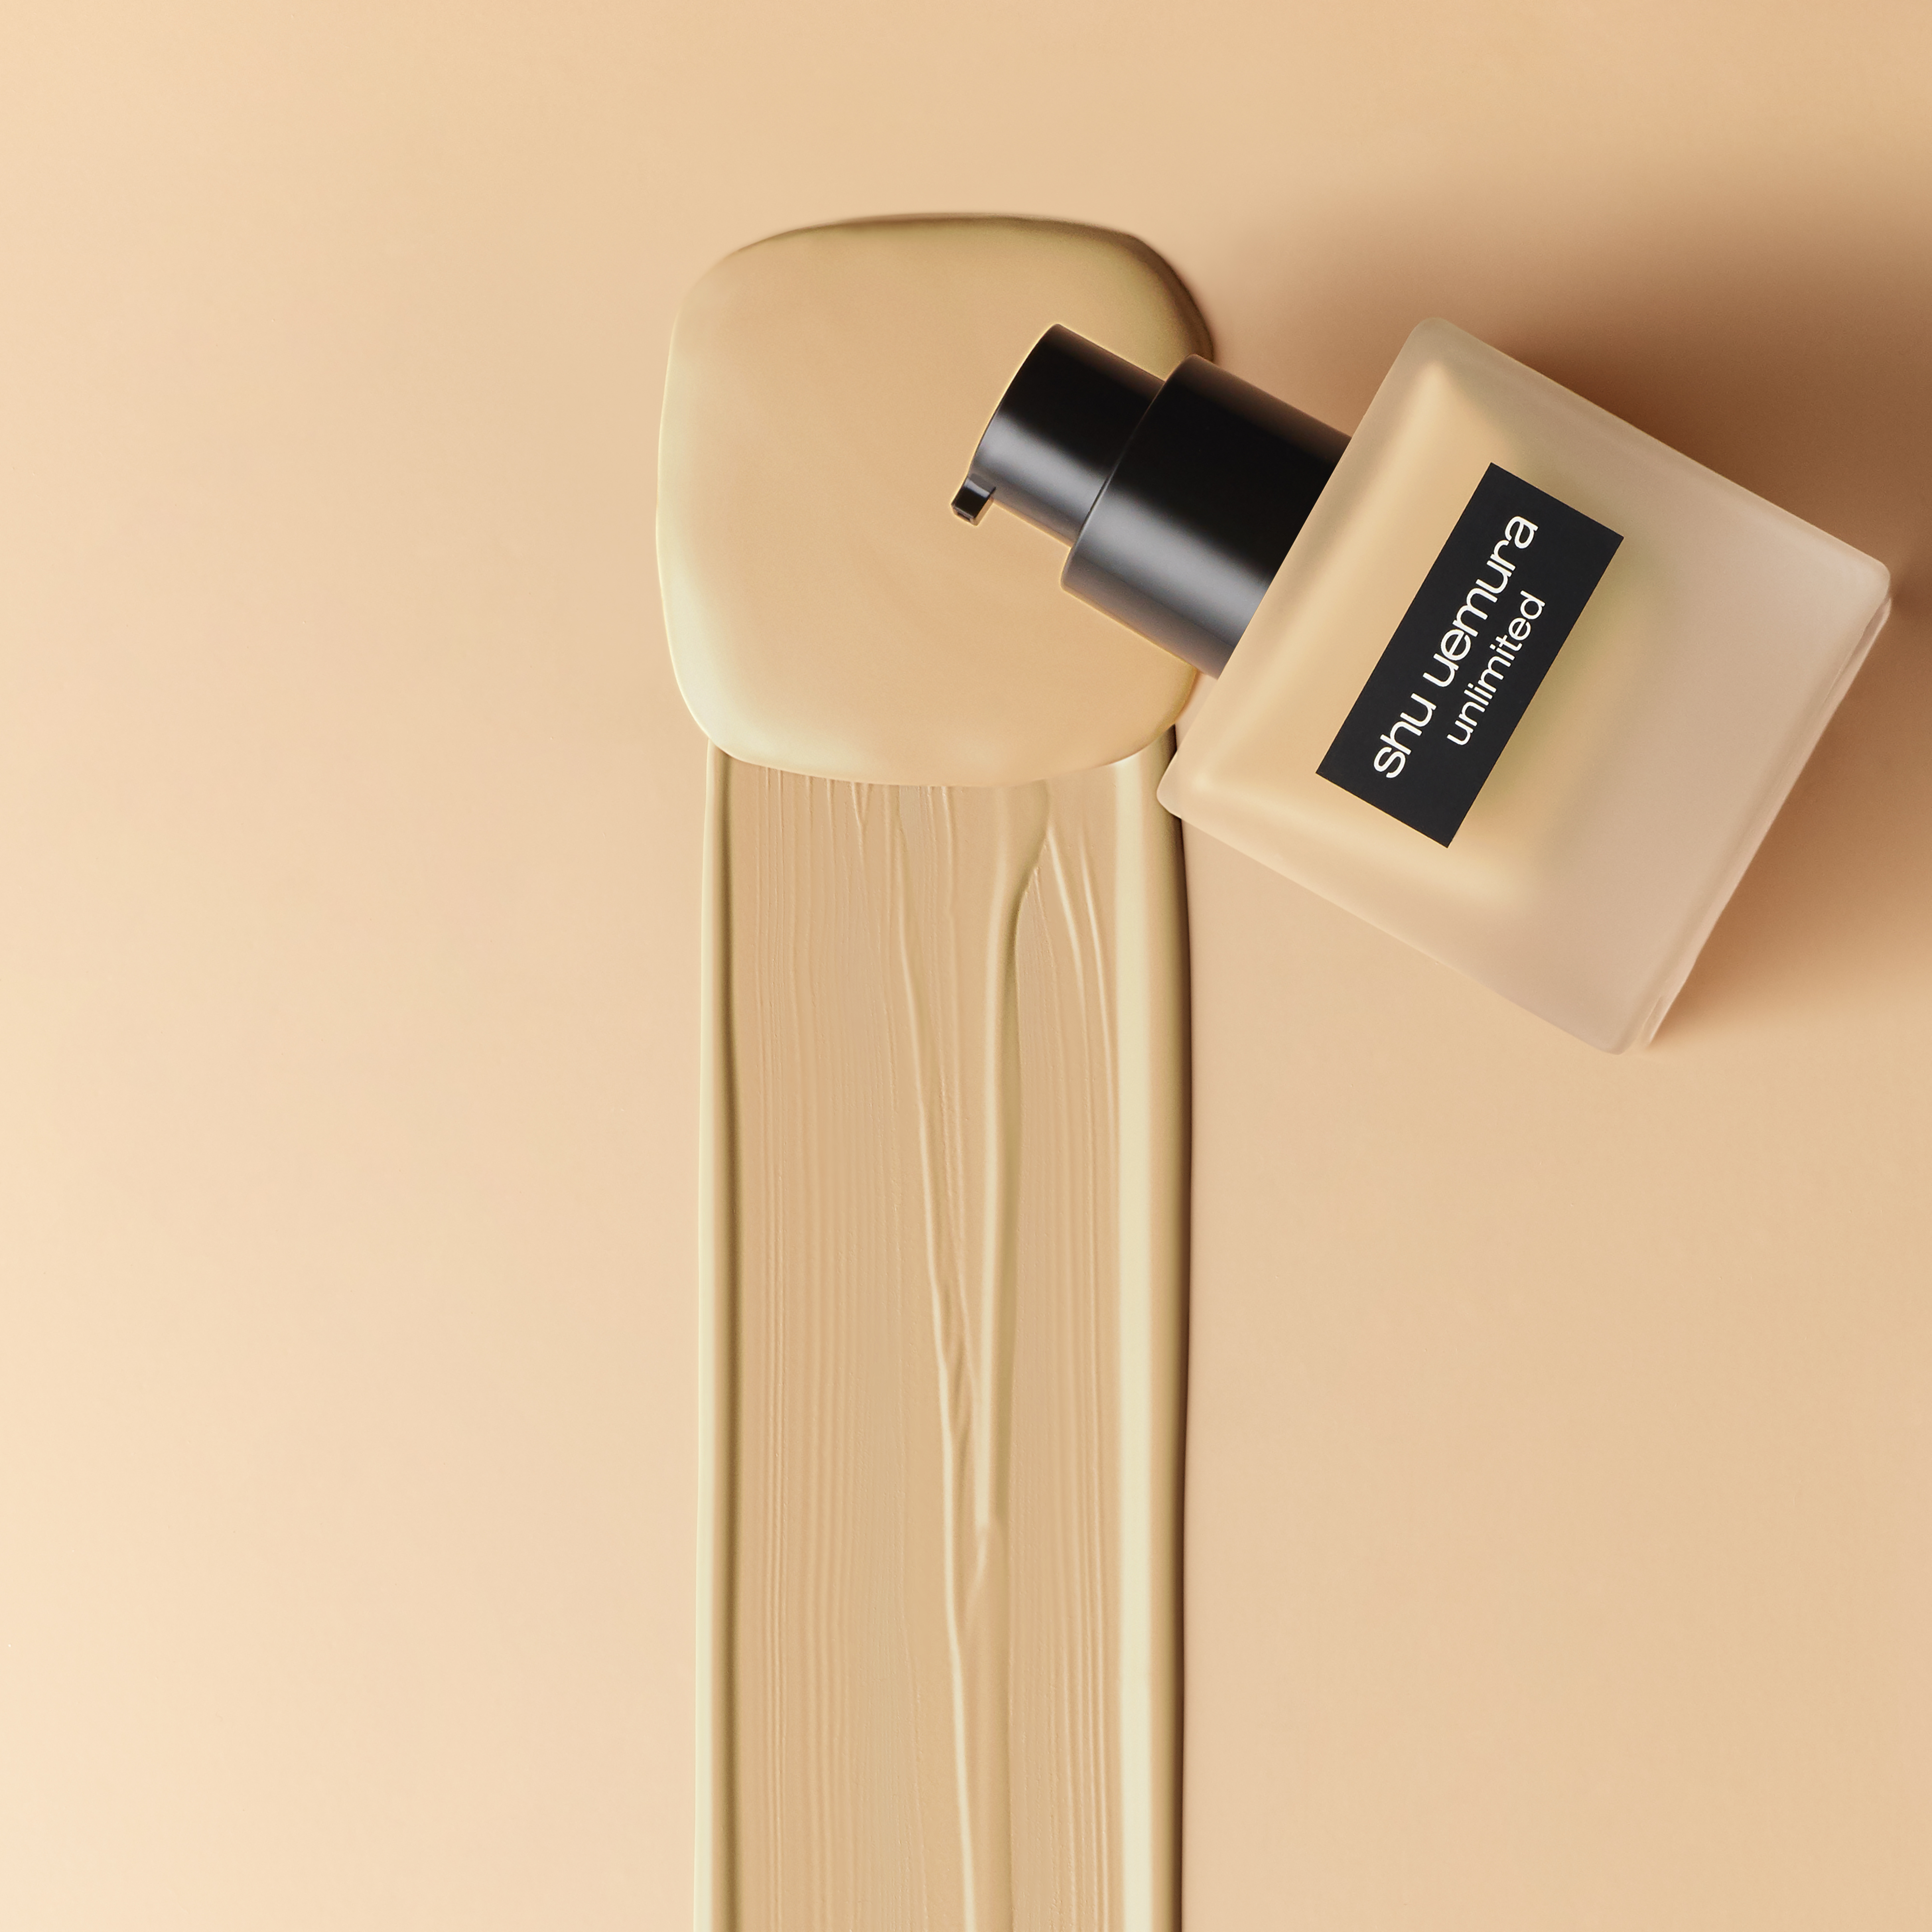 """shu uemura releases 24 shades of foundation """"Unlimited Lasting Fluid"""""""